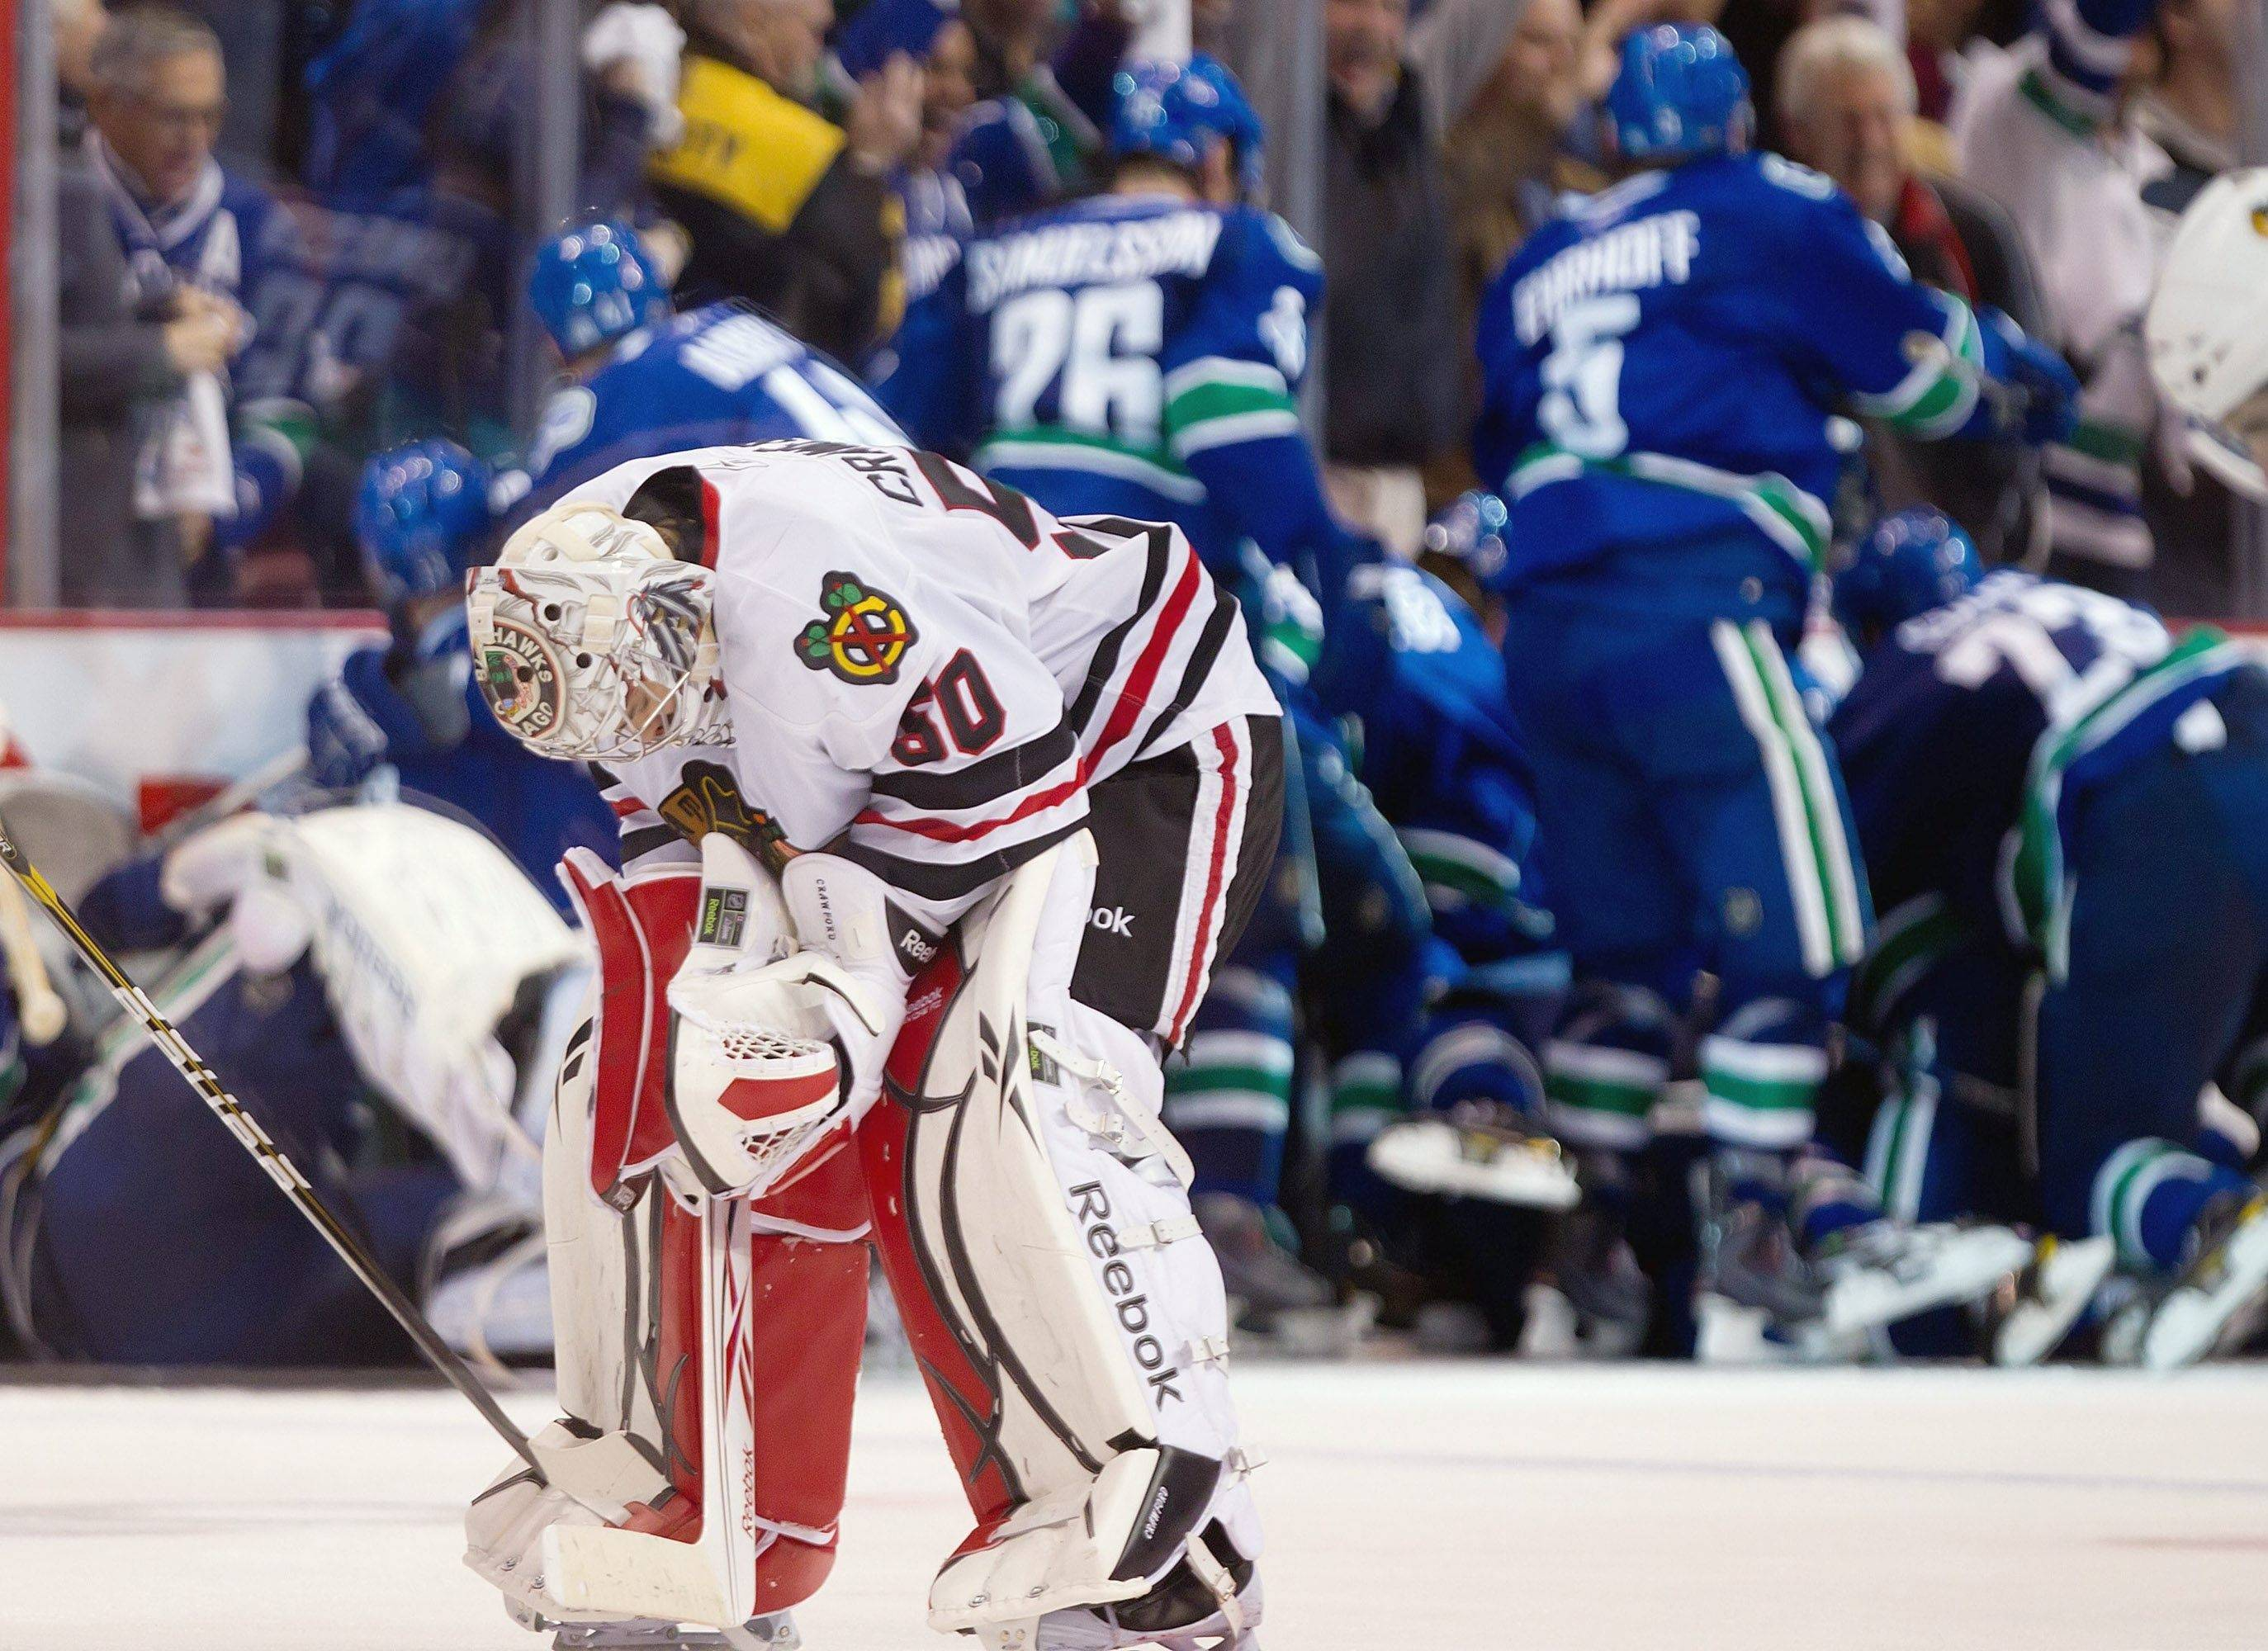 Chicago Blackhawks' Corey Crawford hangs his head as he leaves the ice as the Vancouver Canucks celebrate behind him after winning in overtime of game 7 of the NHL Western Conference quarterfinal Stanley Cup playoff series Tuesday, April 26, 2011.